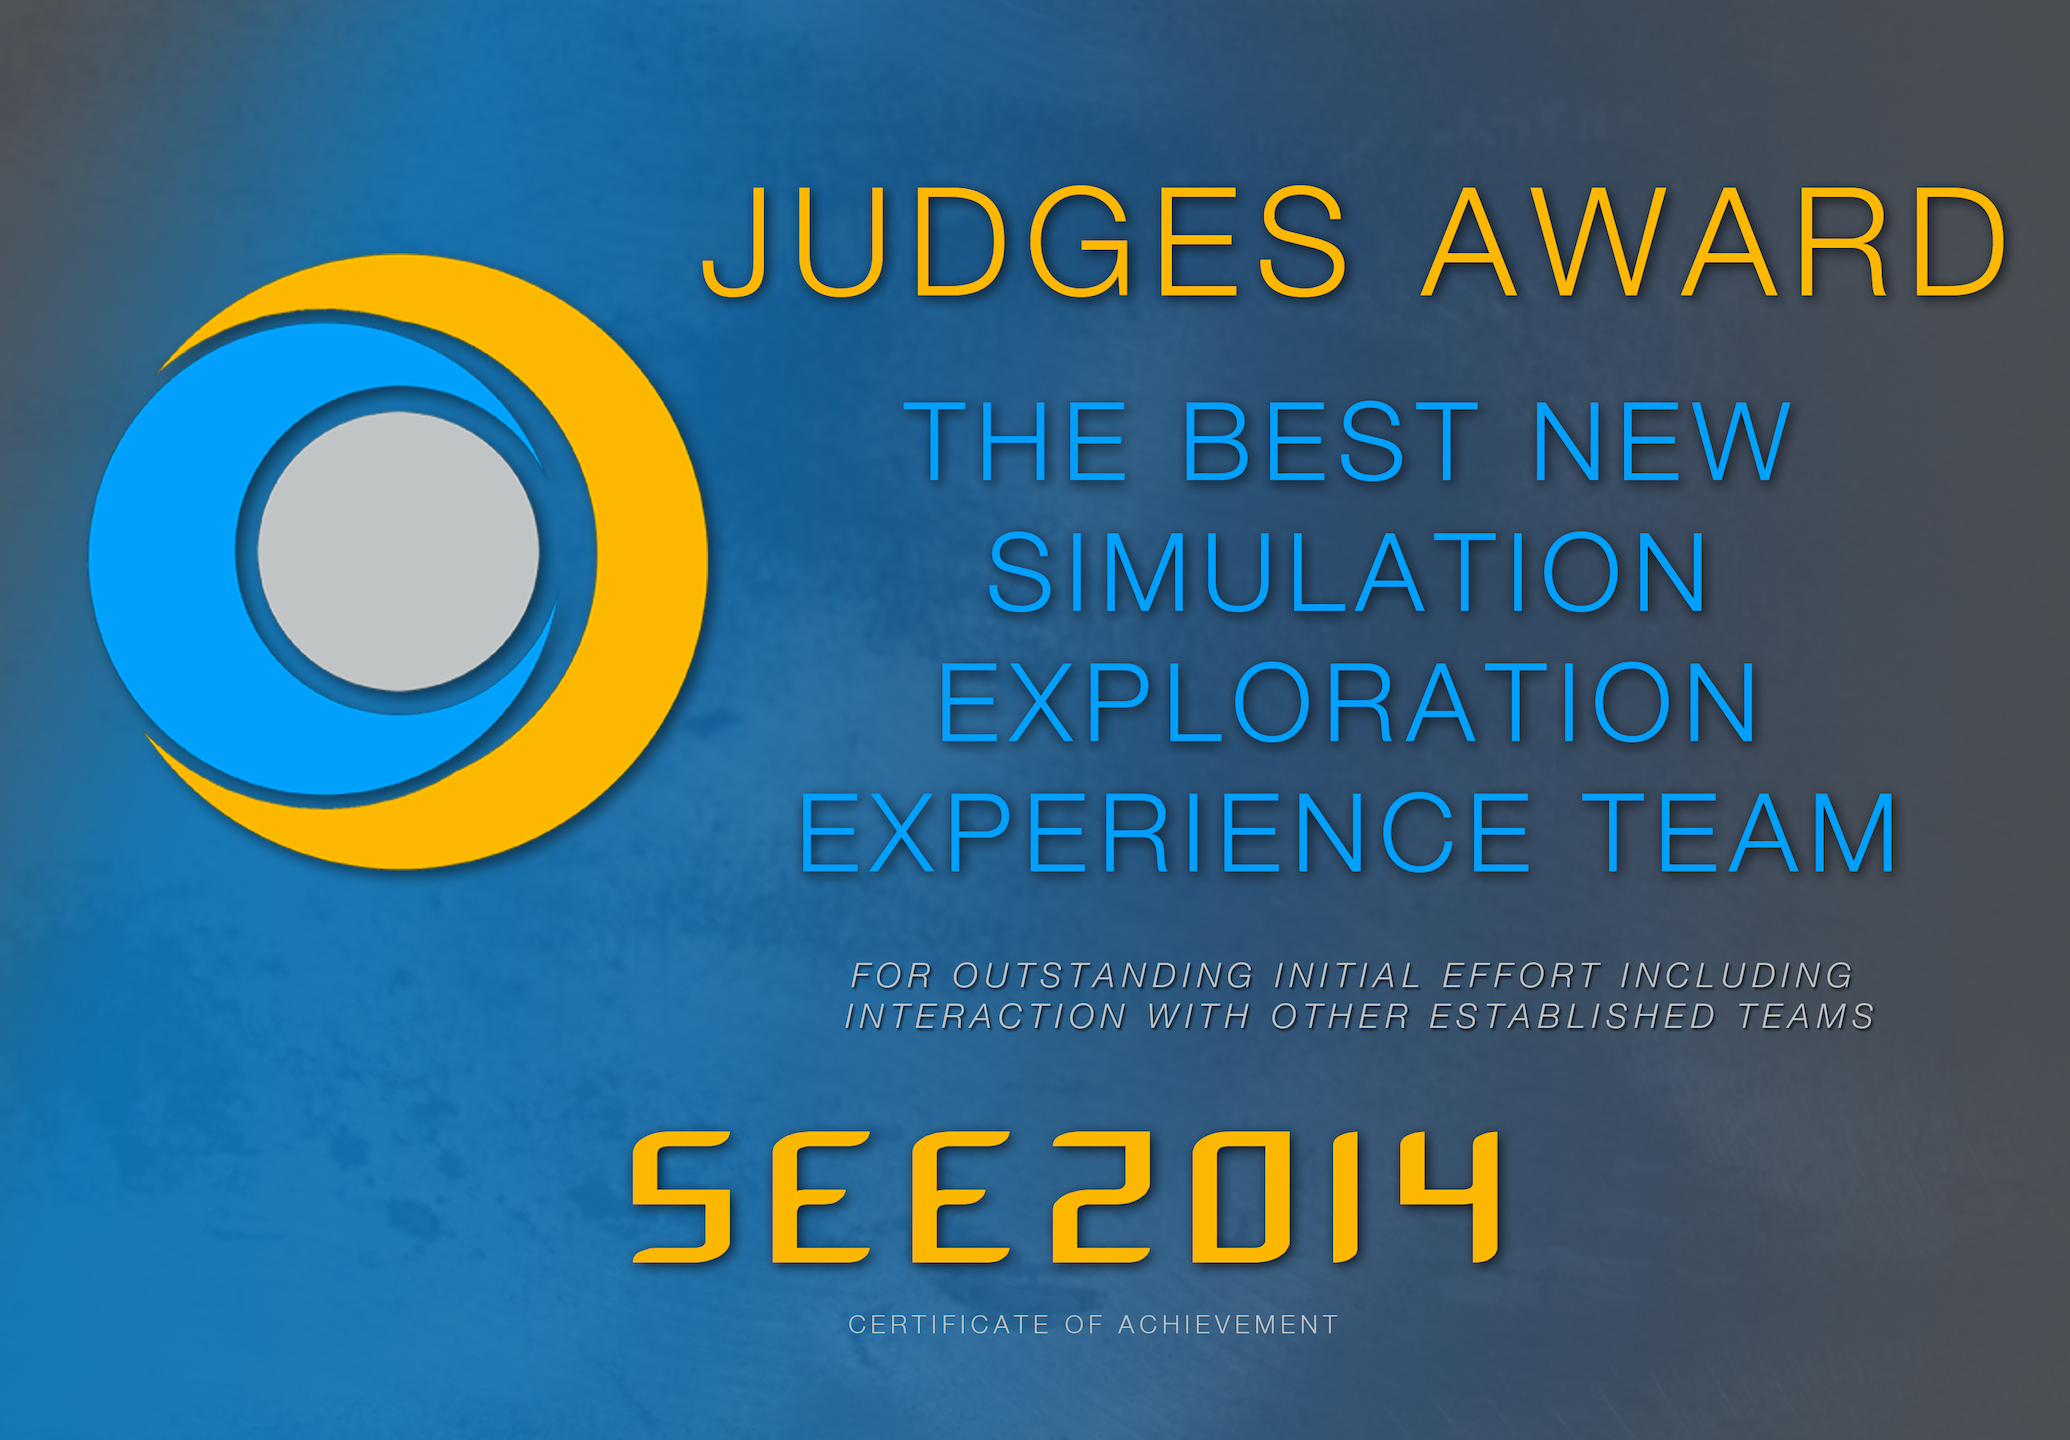 SEE 2014 Judges Award